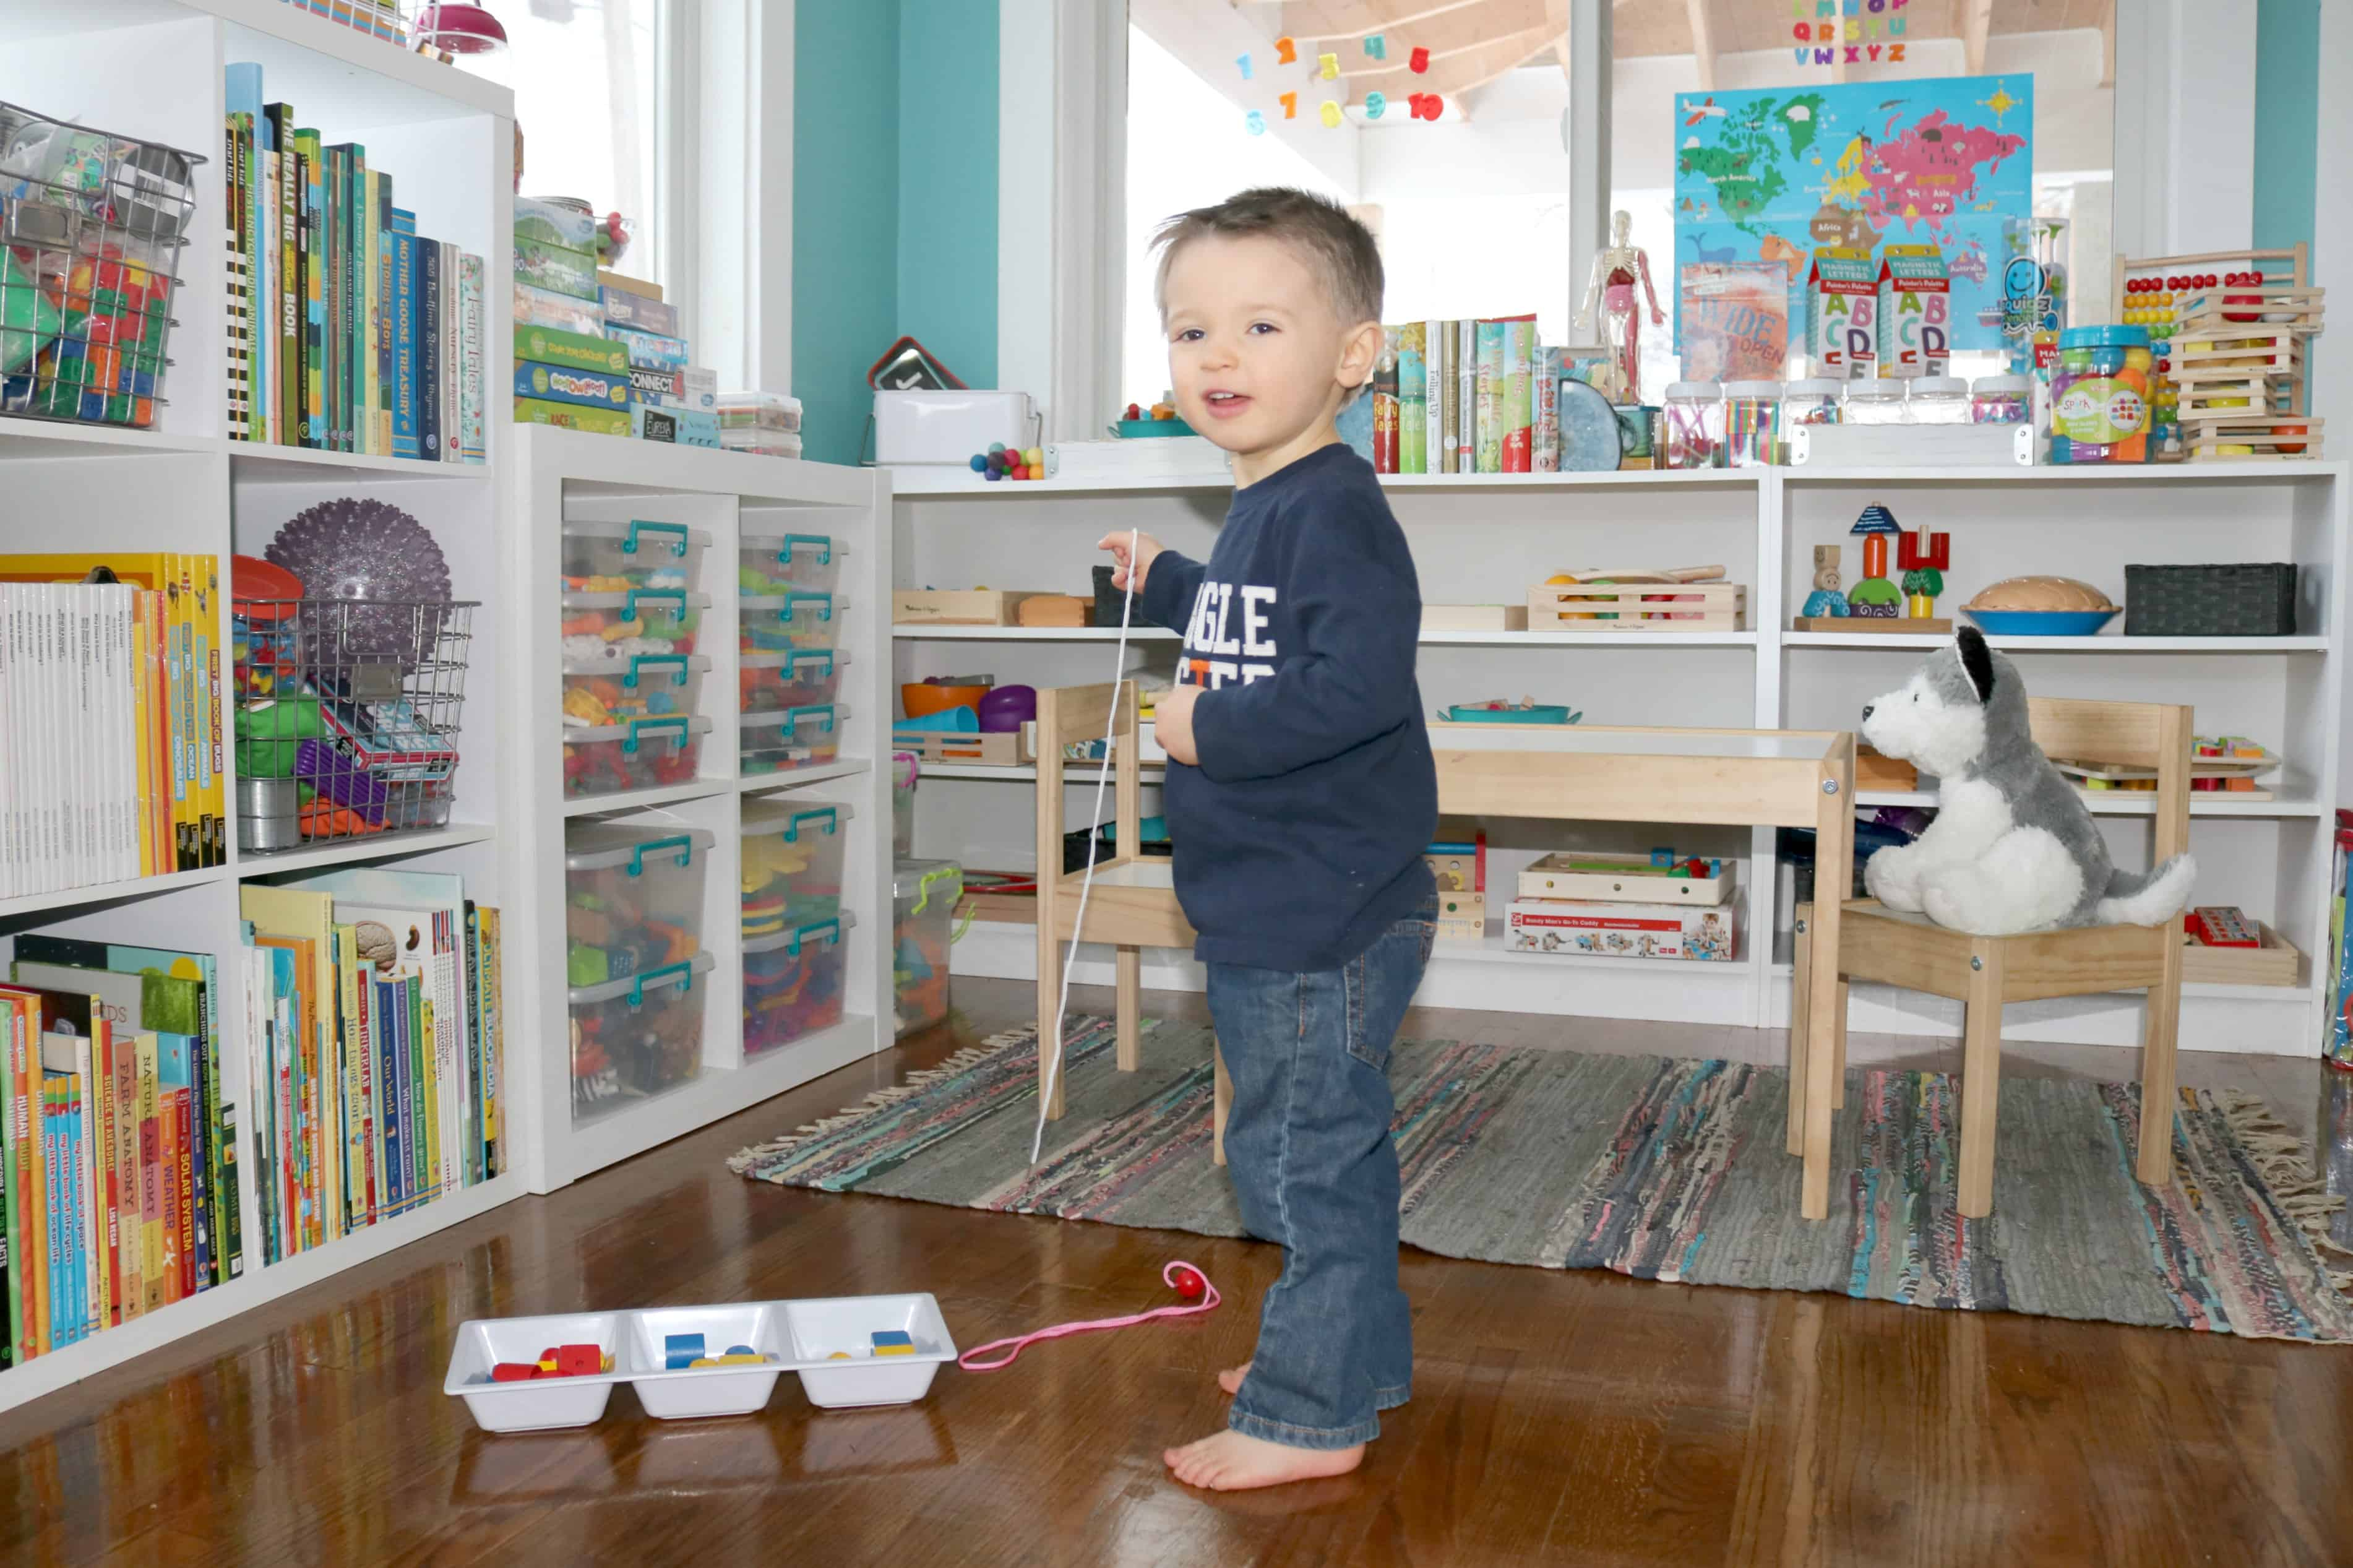 4 Awesome Ideas for Using Preschool Manipulatives With Little Kids